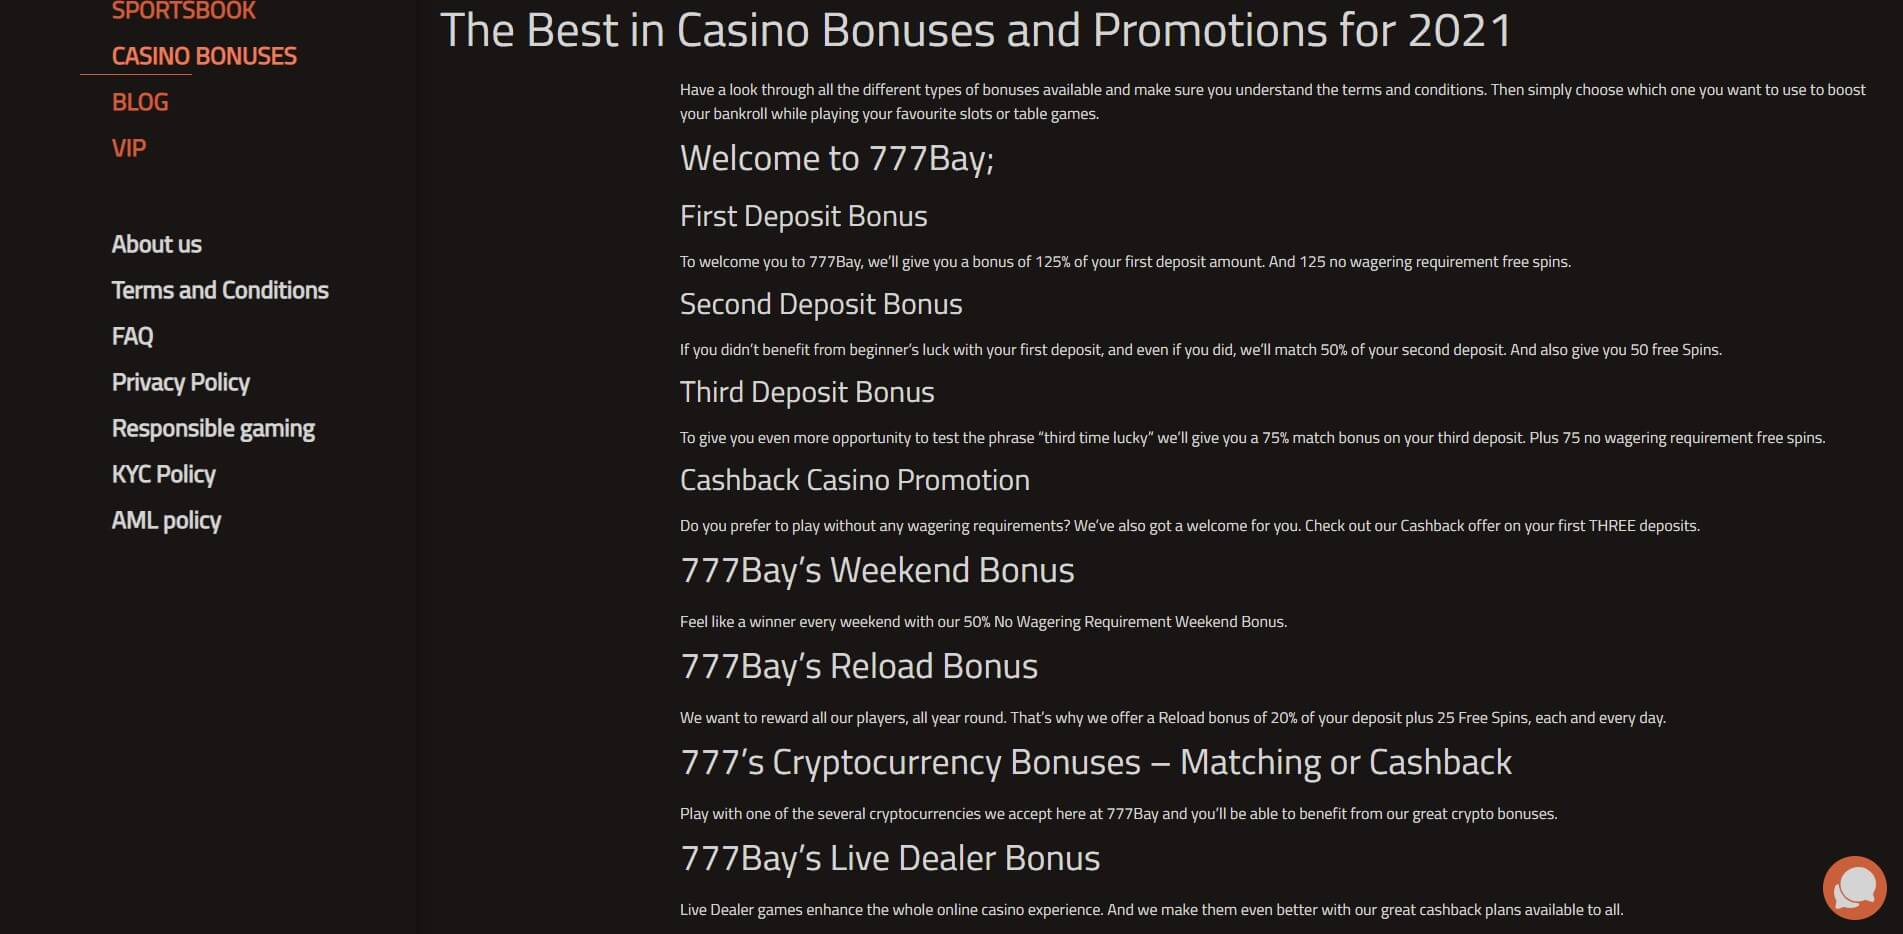 Promotions at 777Bay Casino